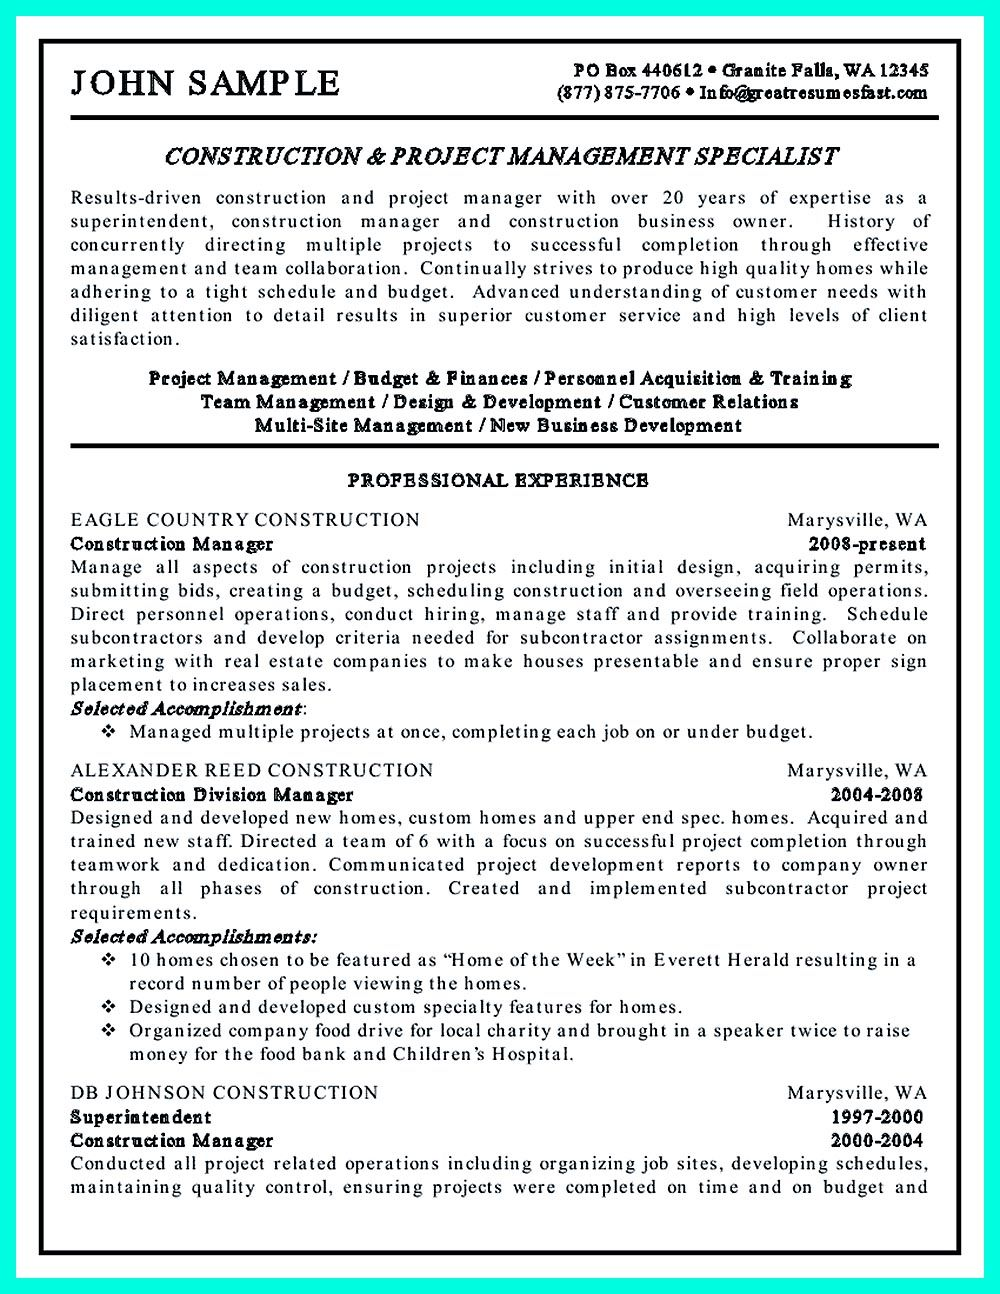 Management Resume Construction Management Resume Is Designed For A Professional Who